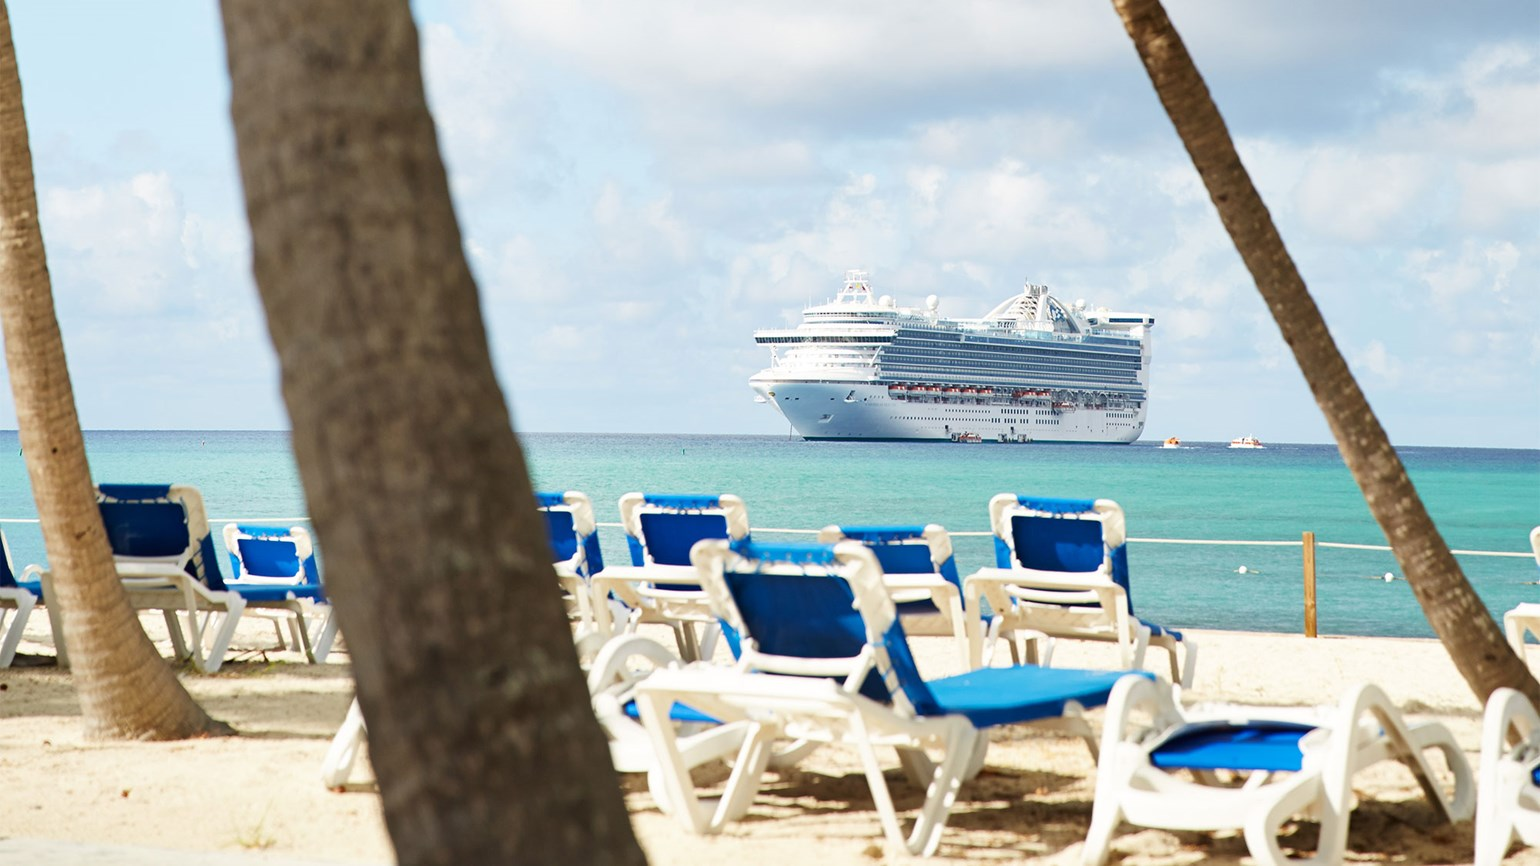 Princess Cays has WiFi, among many other upgrades